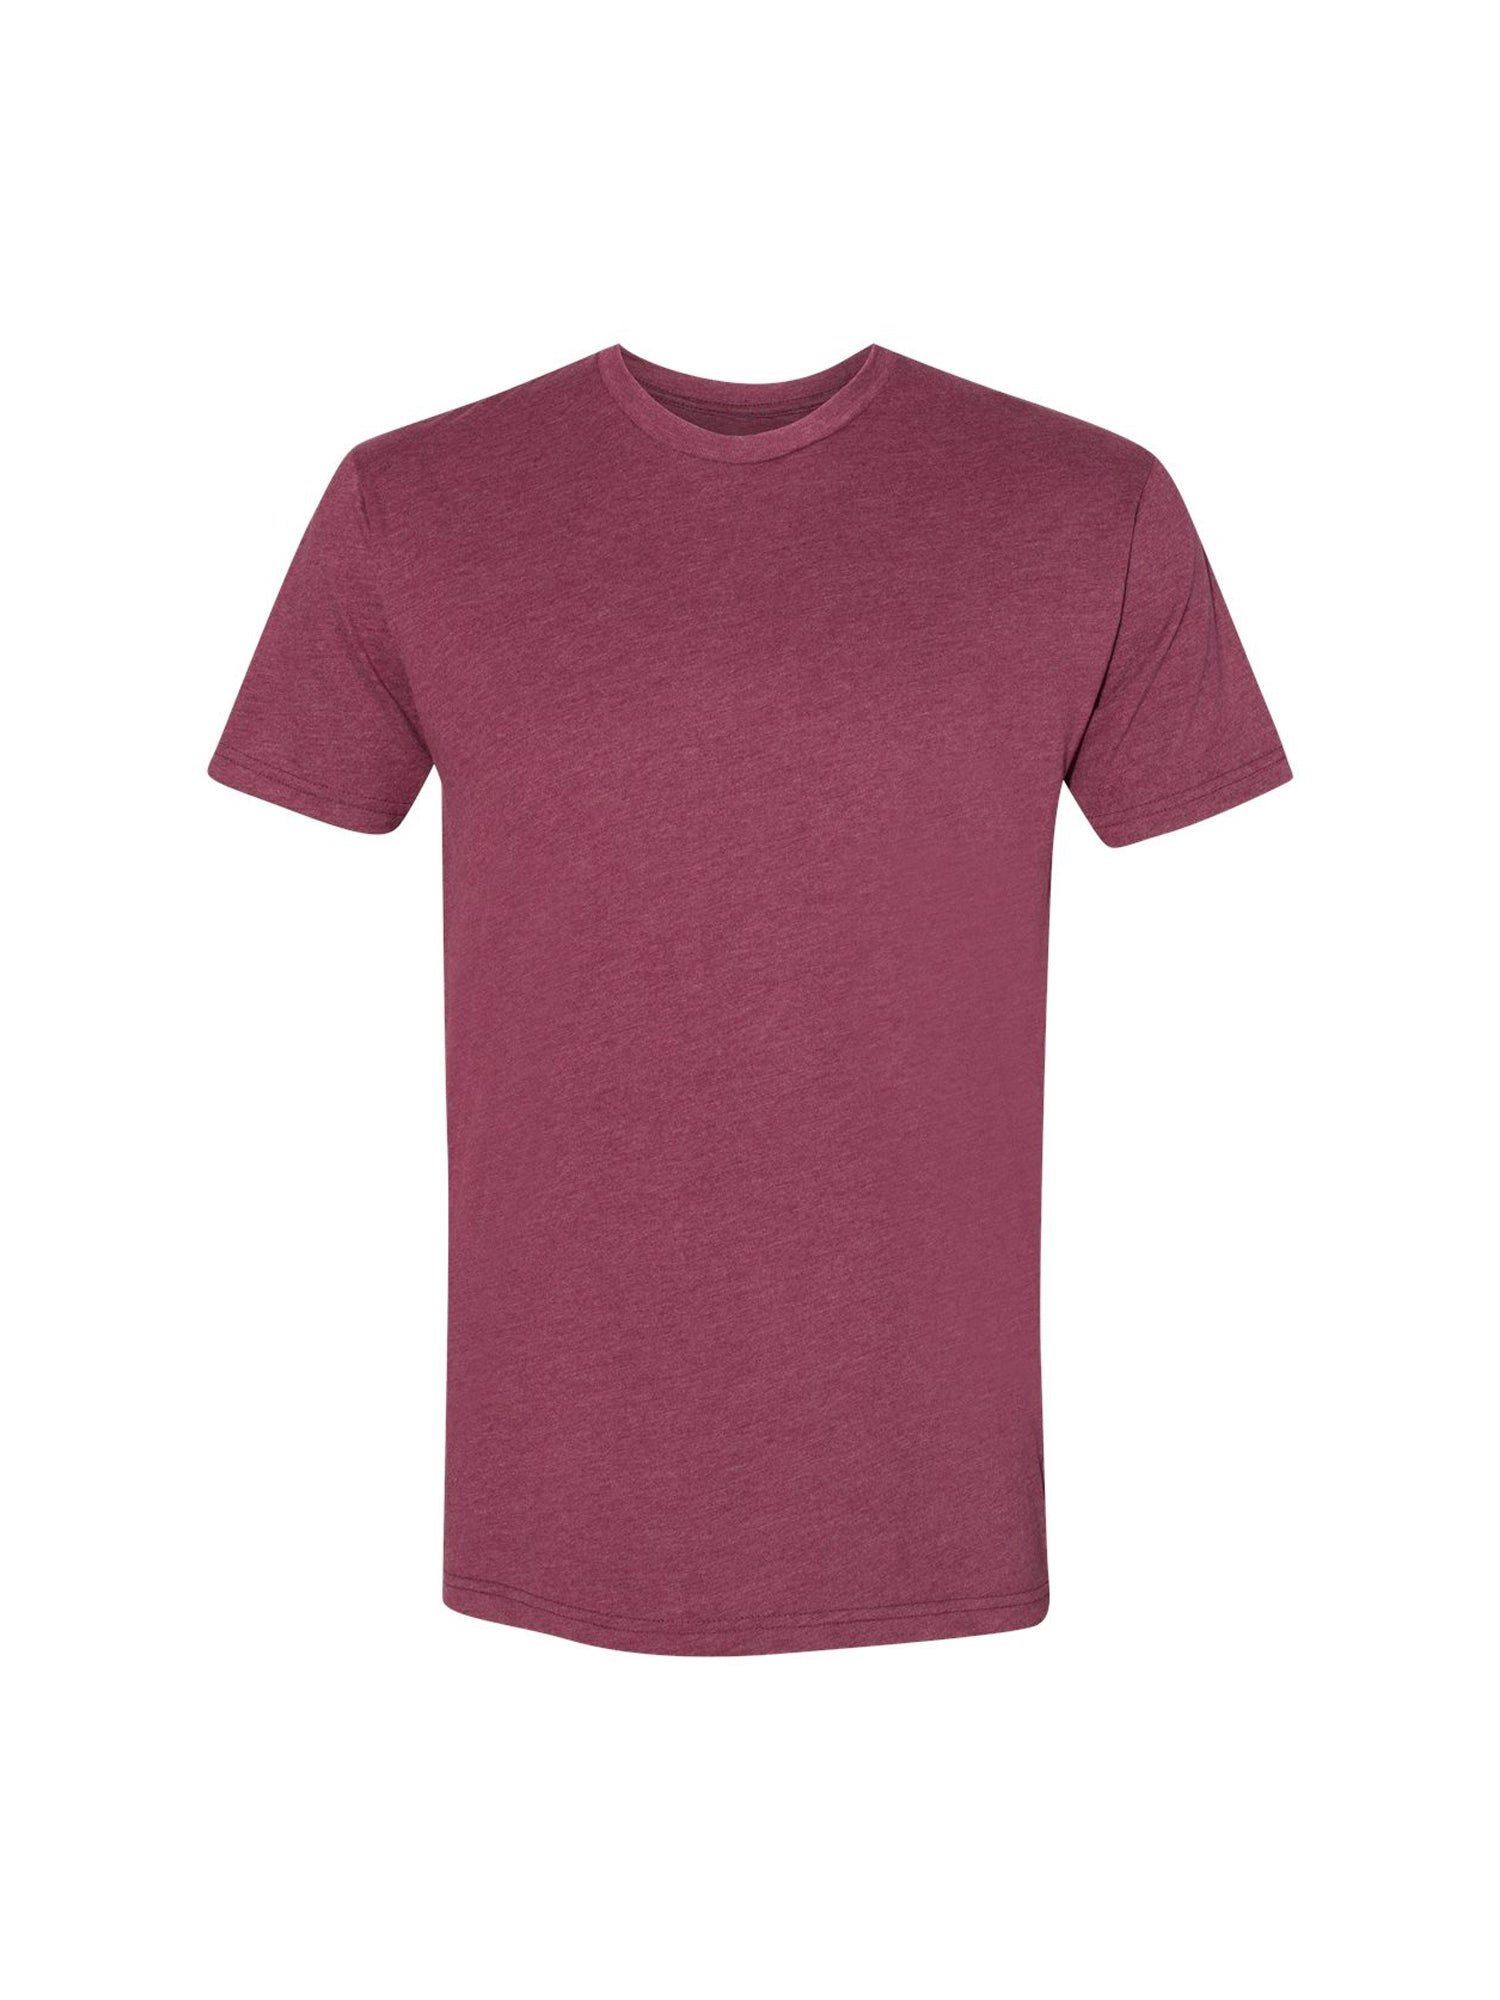 SUEDED CREW - HEATHER MAROON